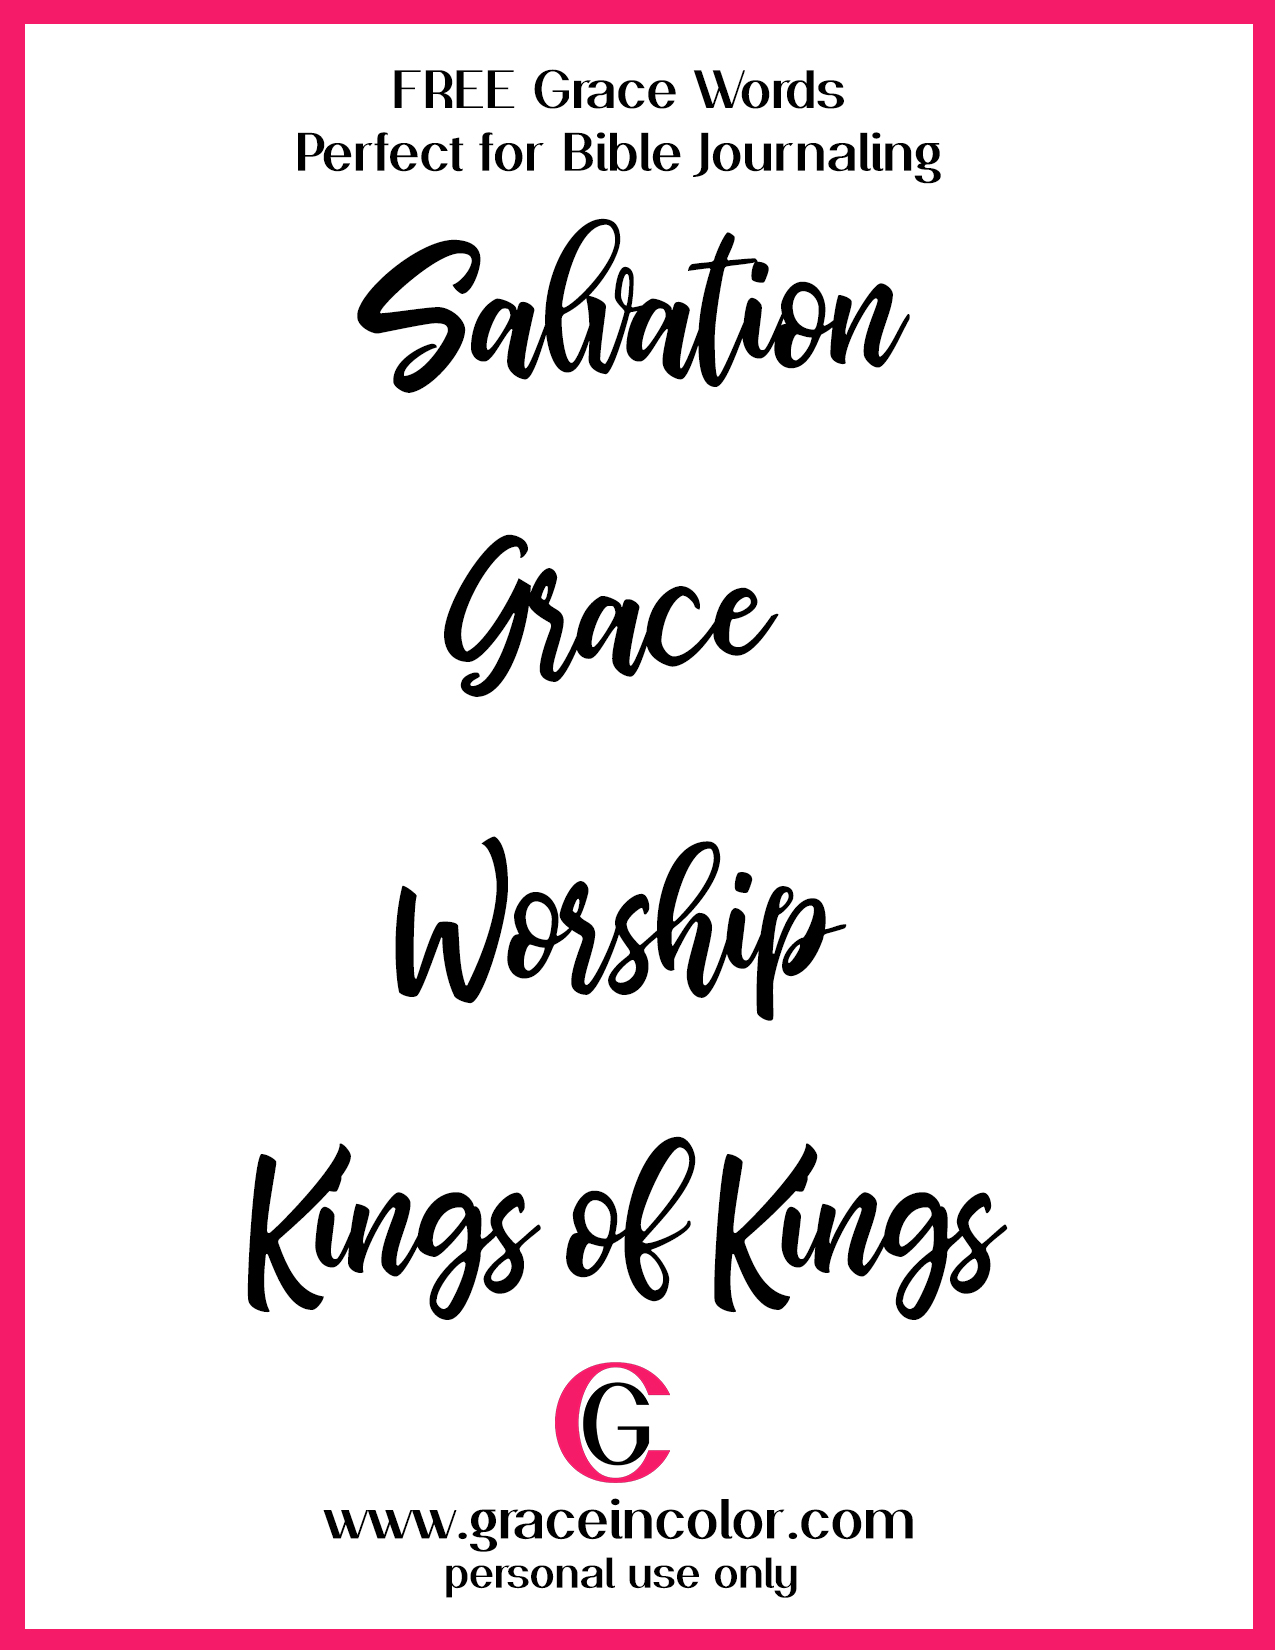 FREE printable Word Art for Bible Journaling